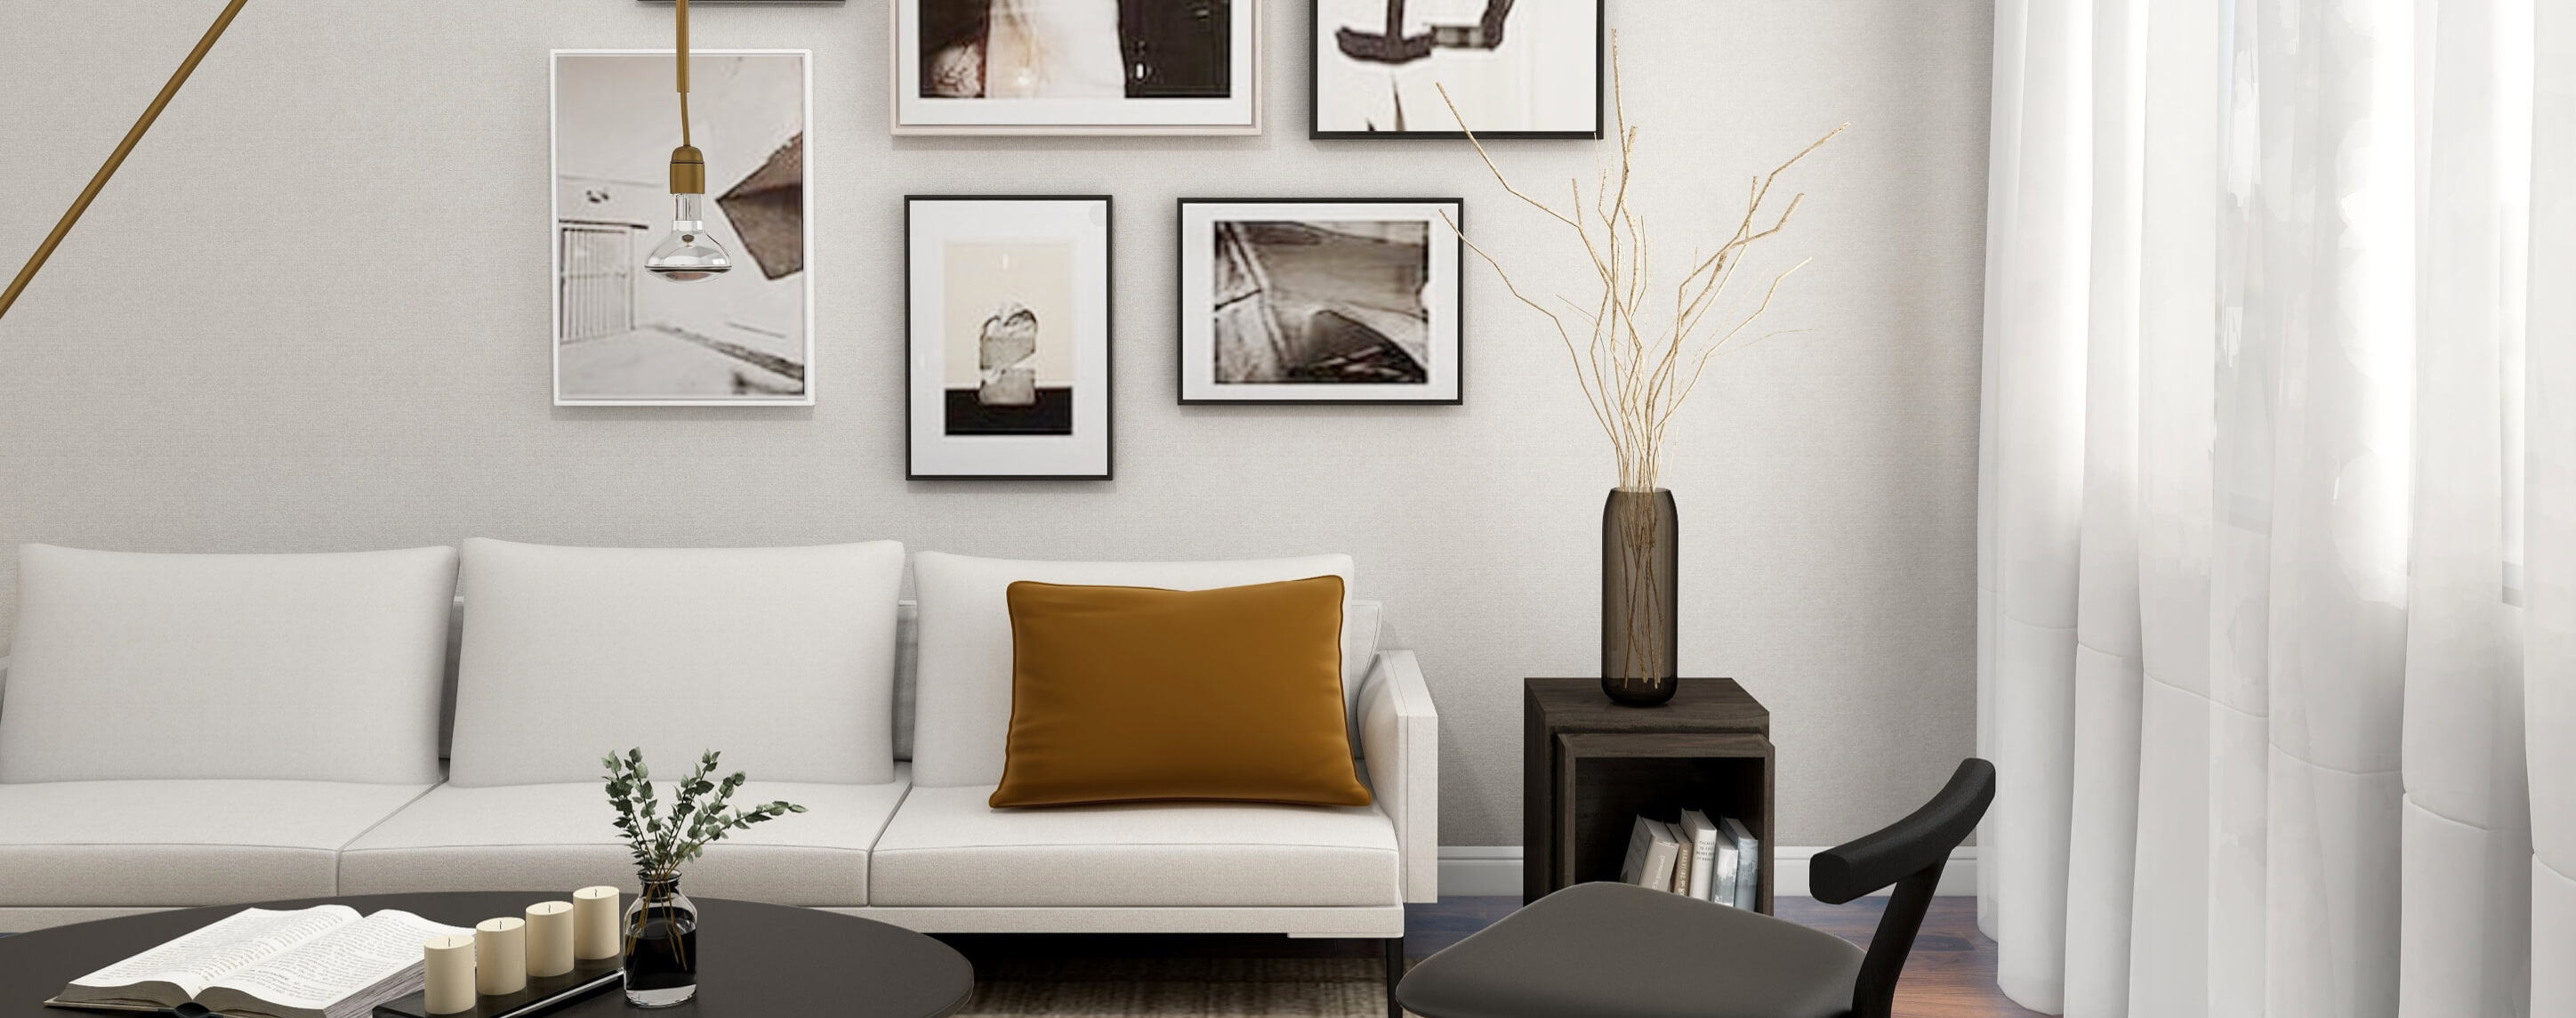 Image of Modern Living room situated in white colors